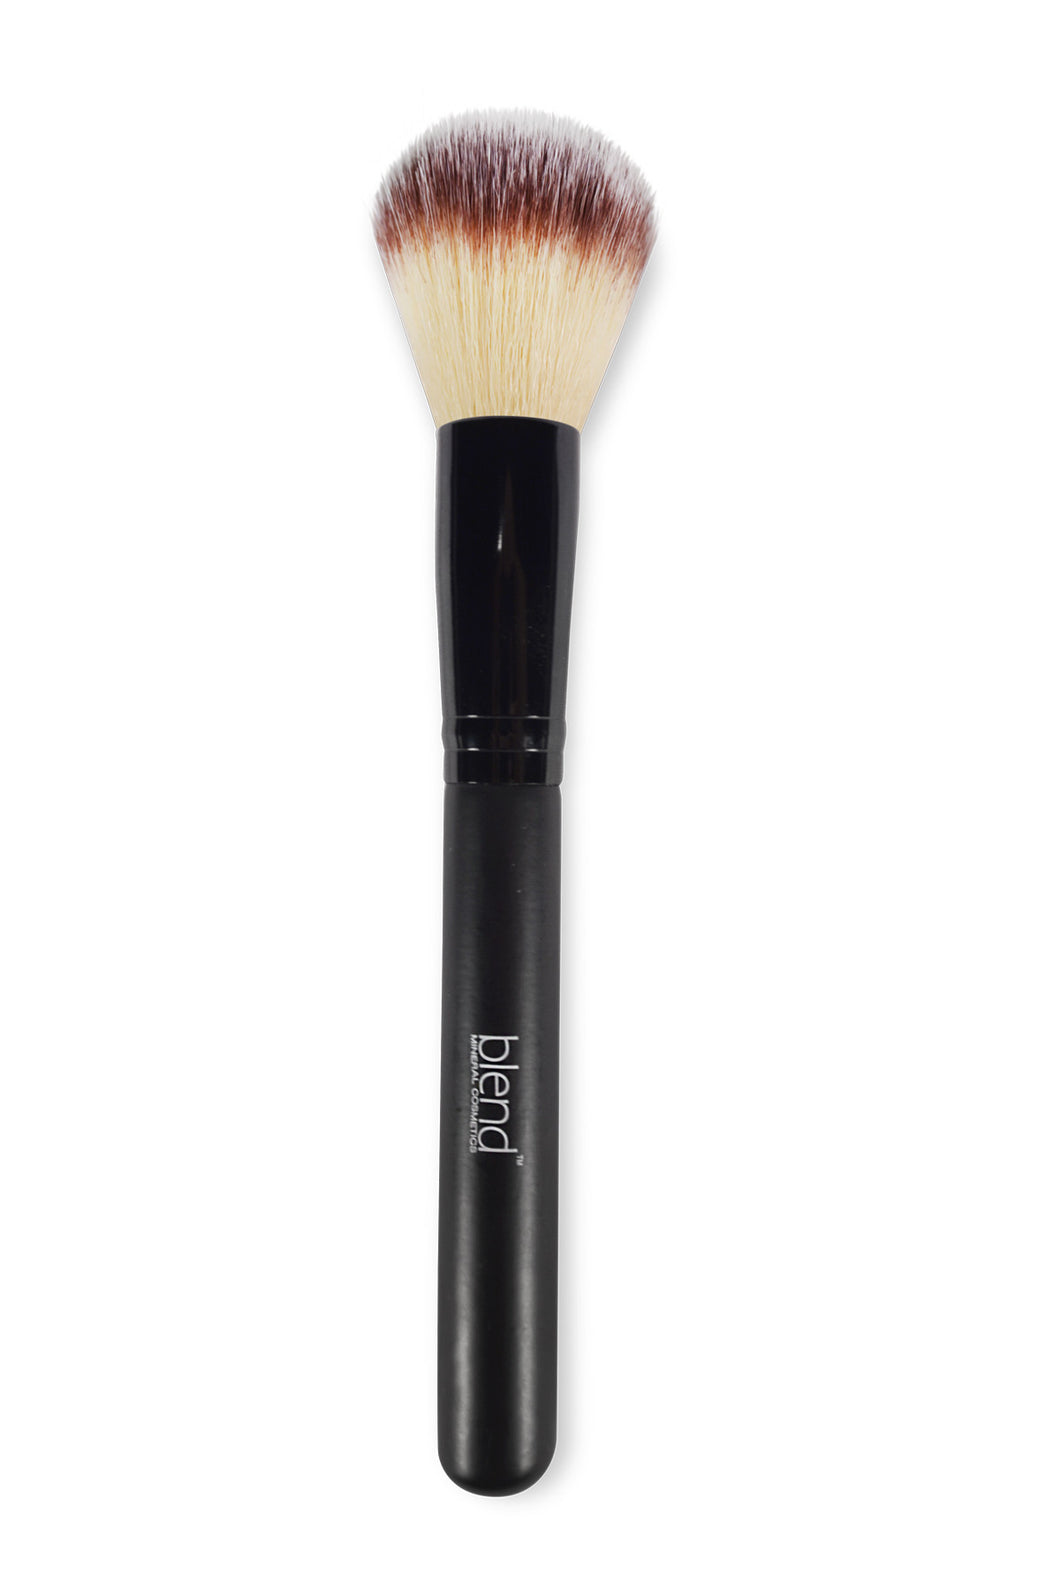 PRO Foundation Powder Brush - Natural Brown